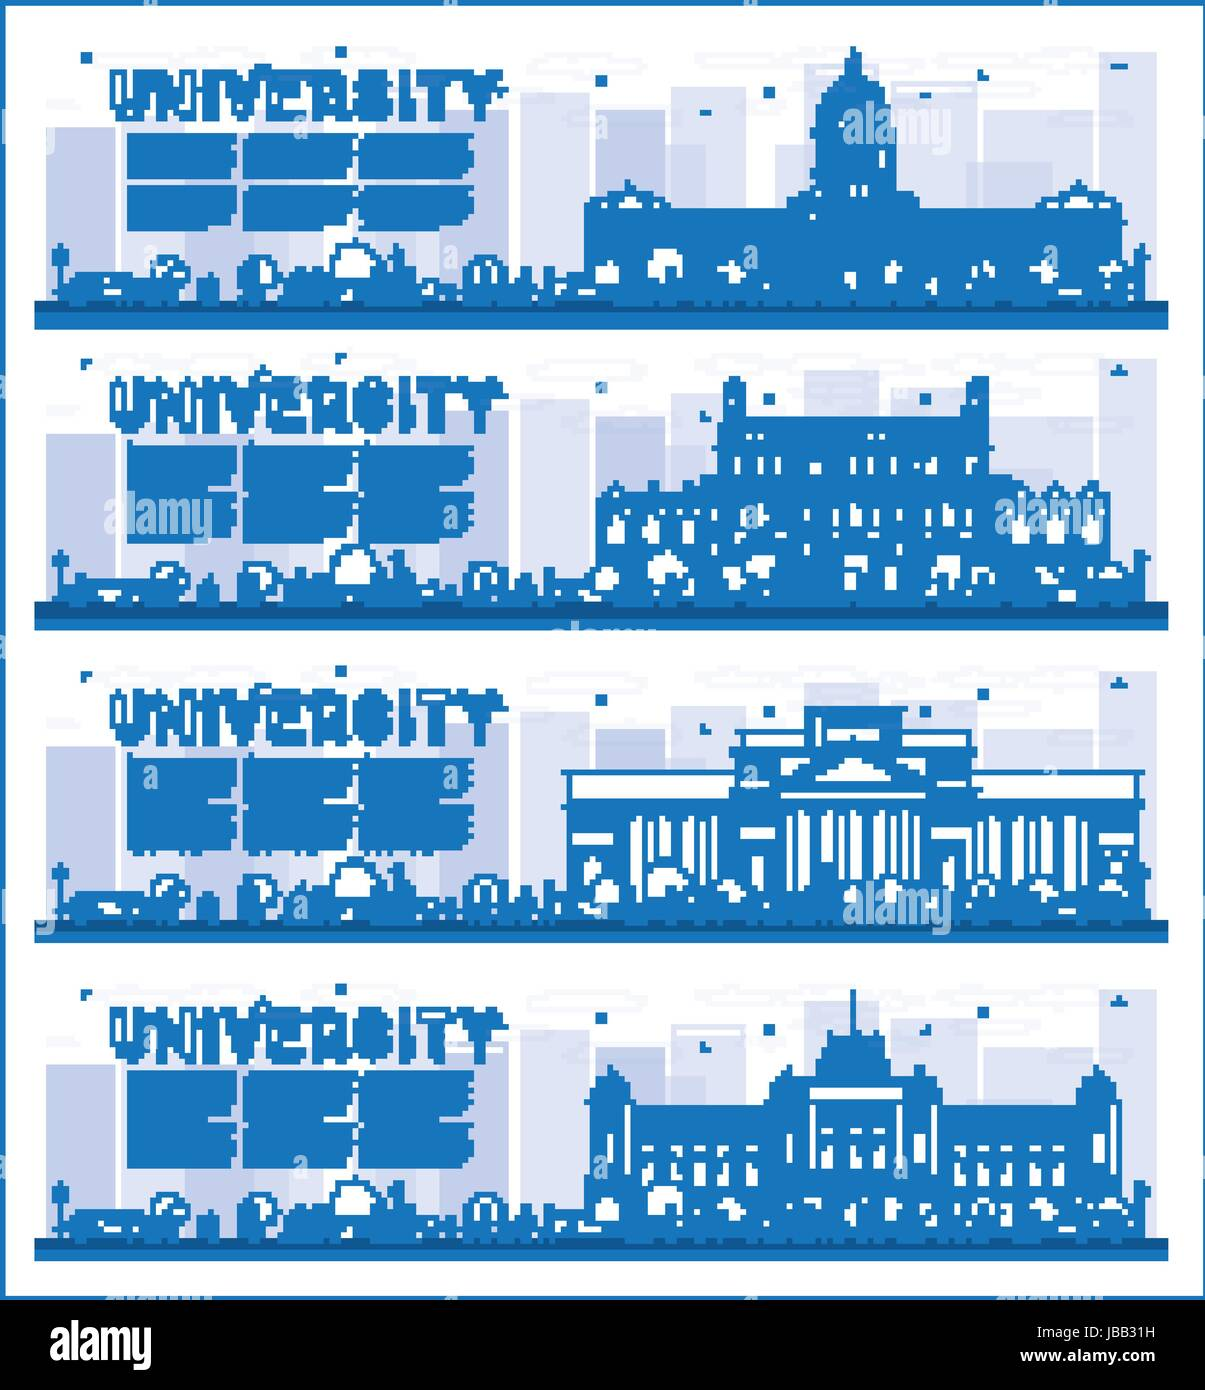 Outline Set of University Study Banners. Vector Illustration. Students Go to the Main Building of University. Banner - Stock Image